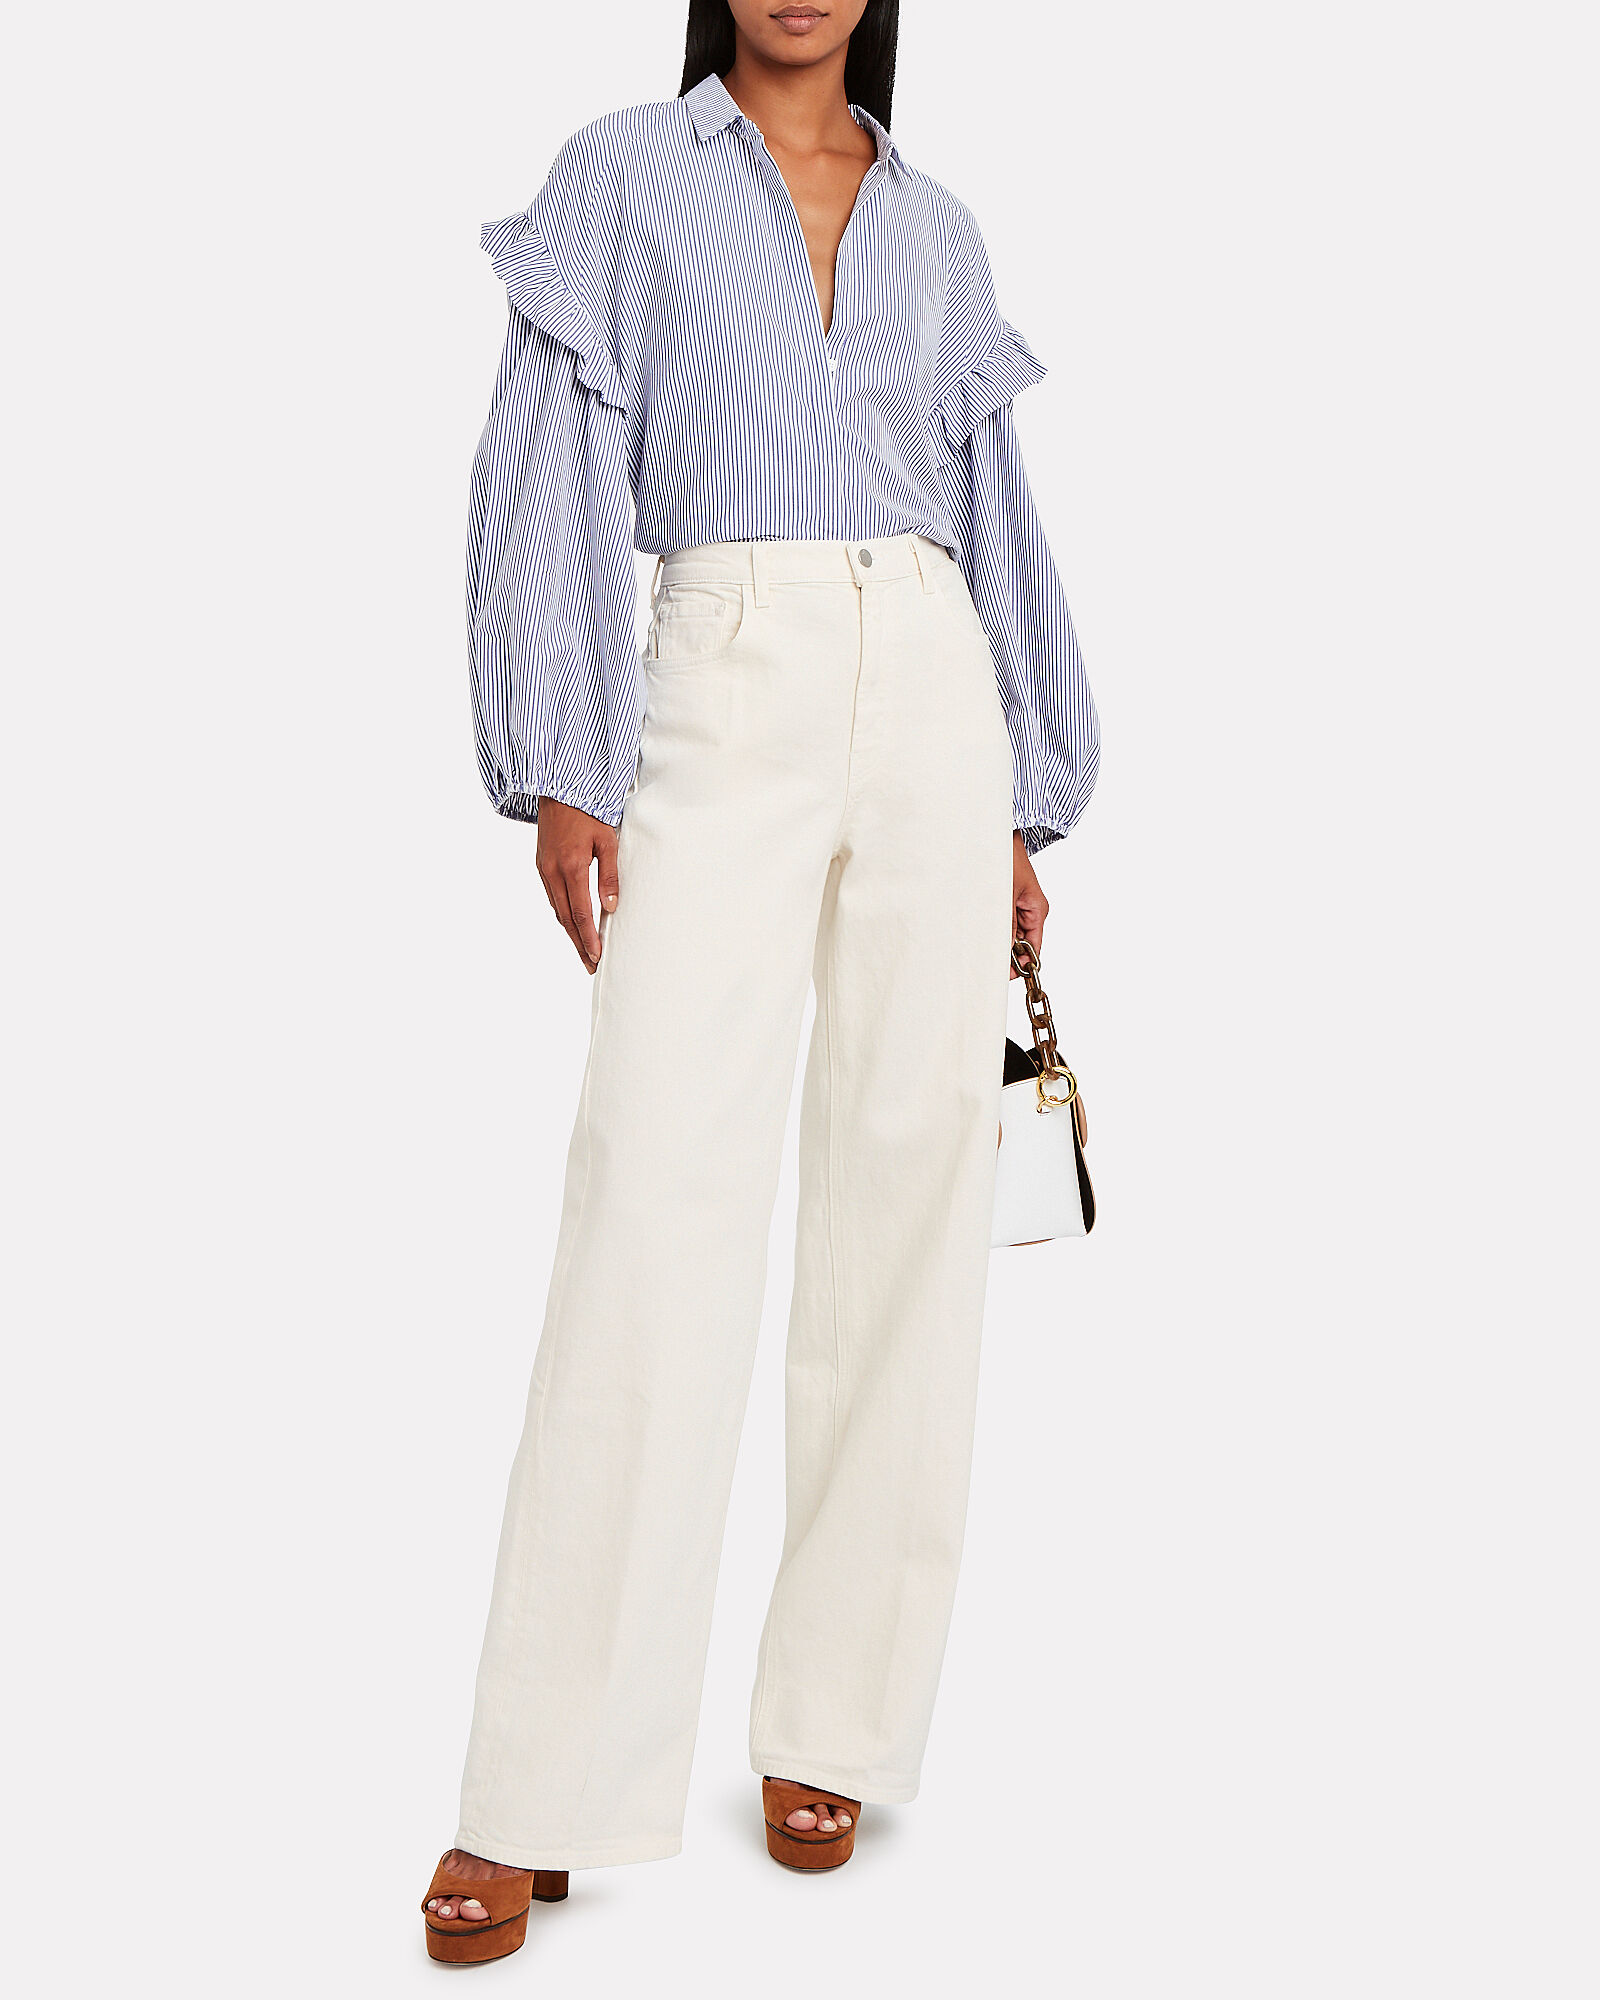 Elsa Monday Wide Leg Jeans, WHITE WASH DENIM, hi-res